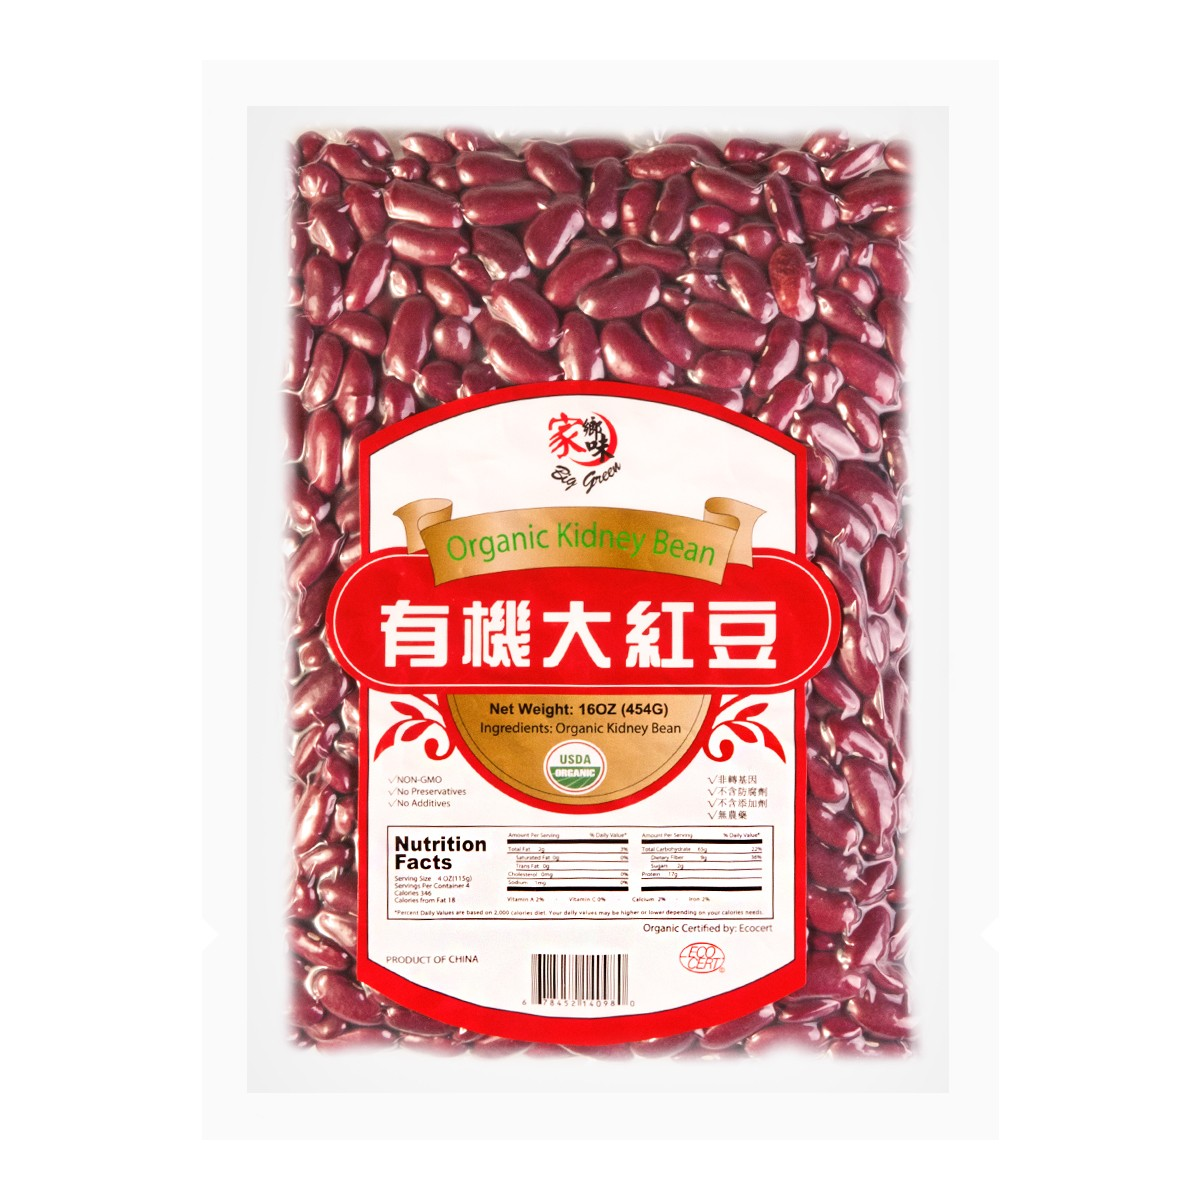 BIG GREEN USDA Organic Kidney Bean 454g